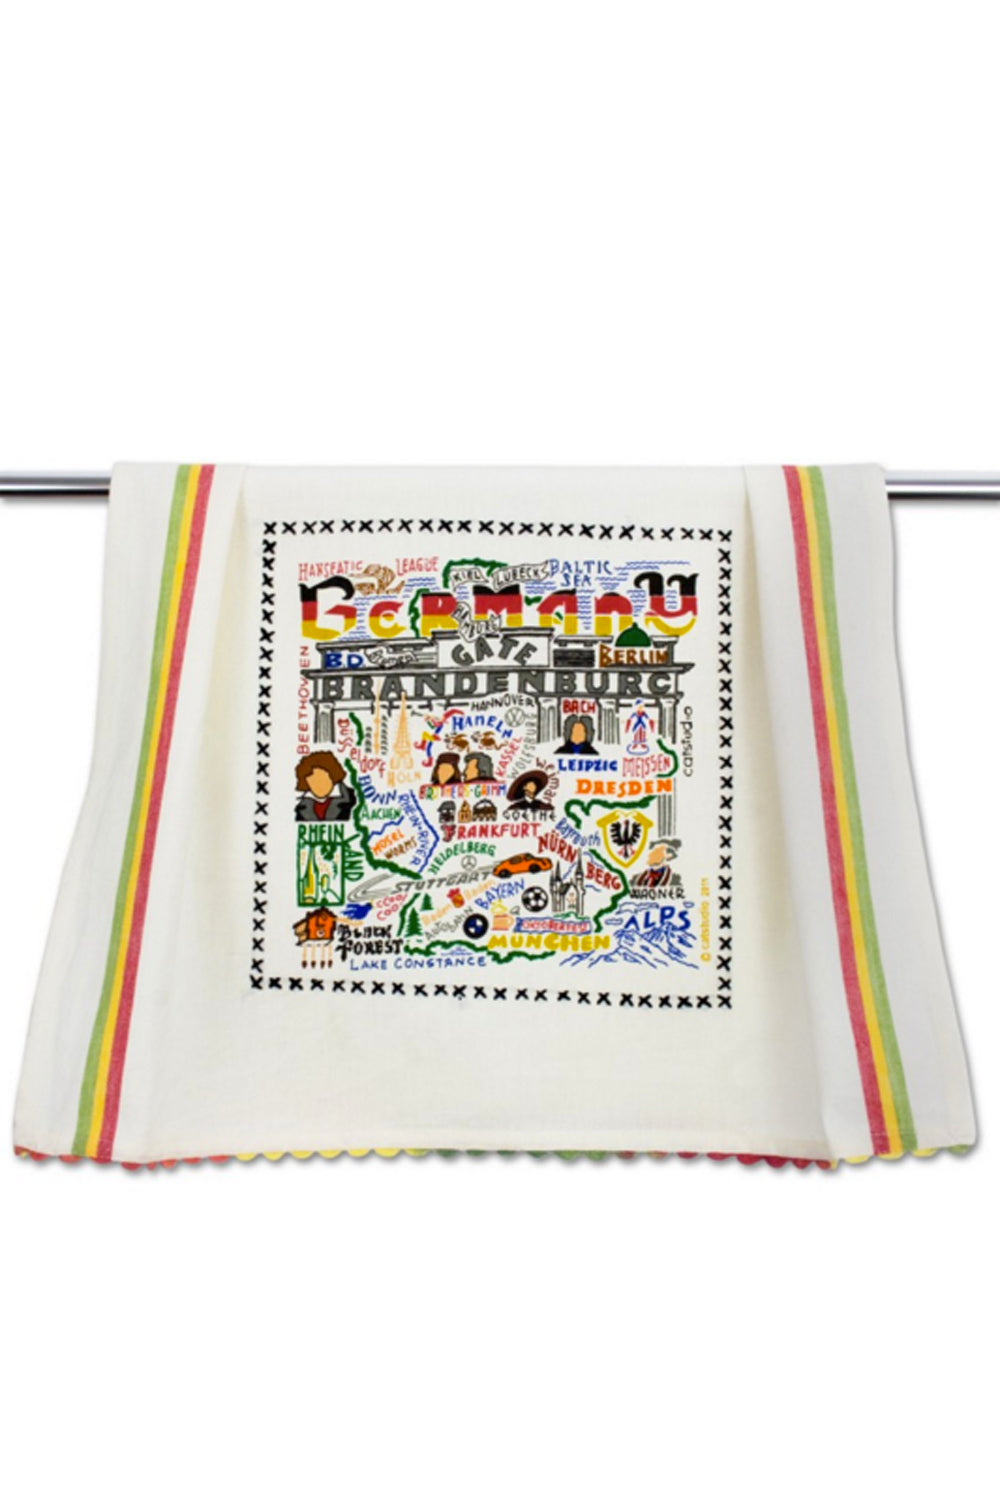 Embroidered Dish Towel - Germany